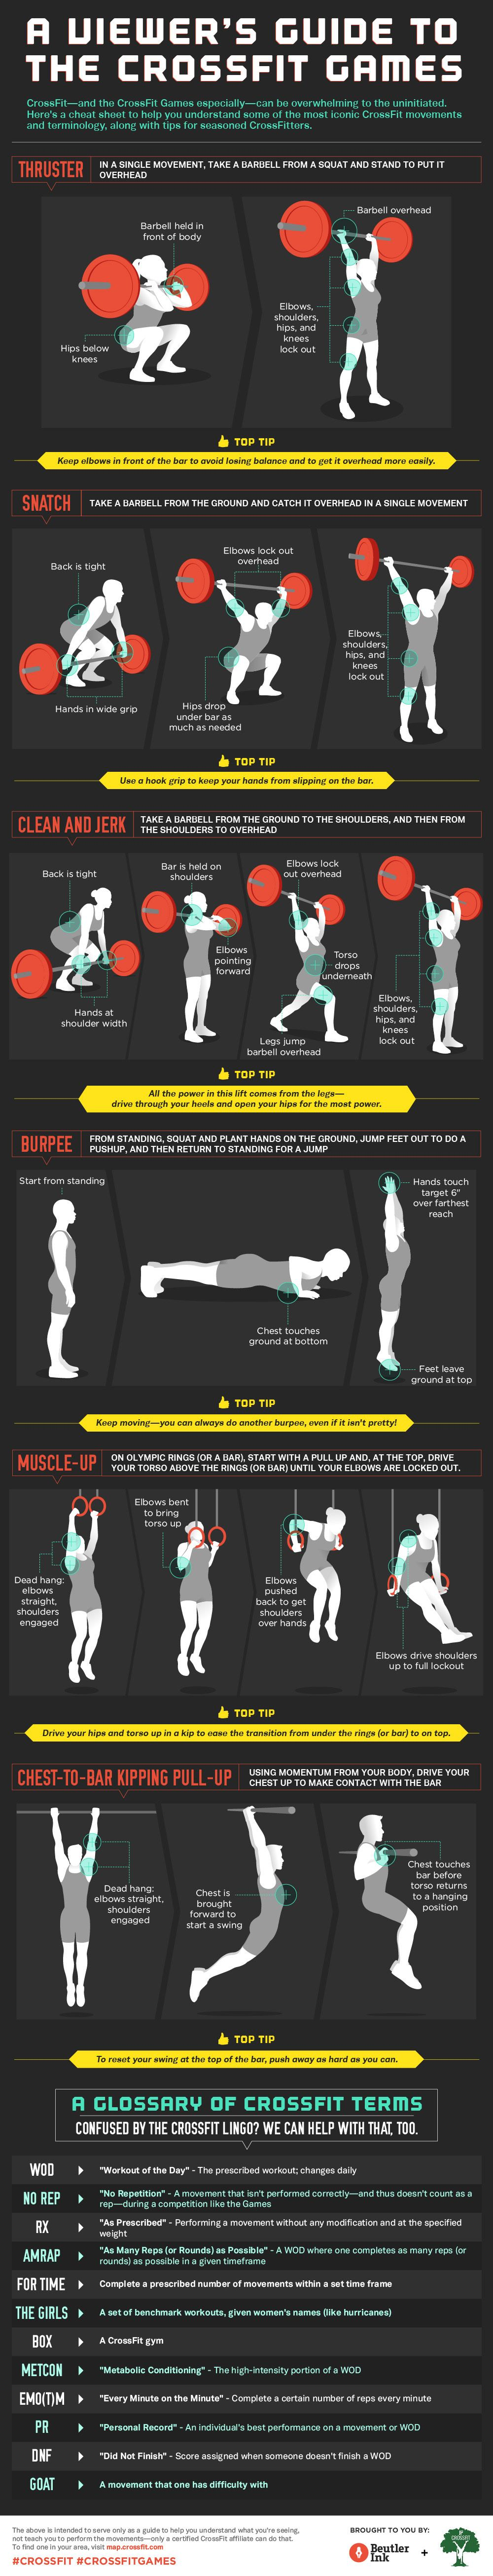 Love this, the movements they perform at the games can be hard to remember if you aren't active in crossfit.